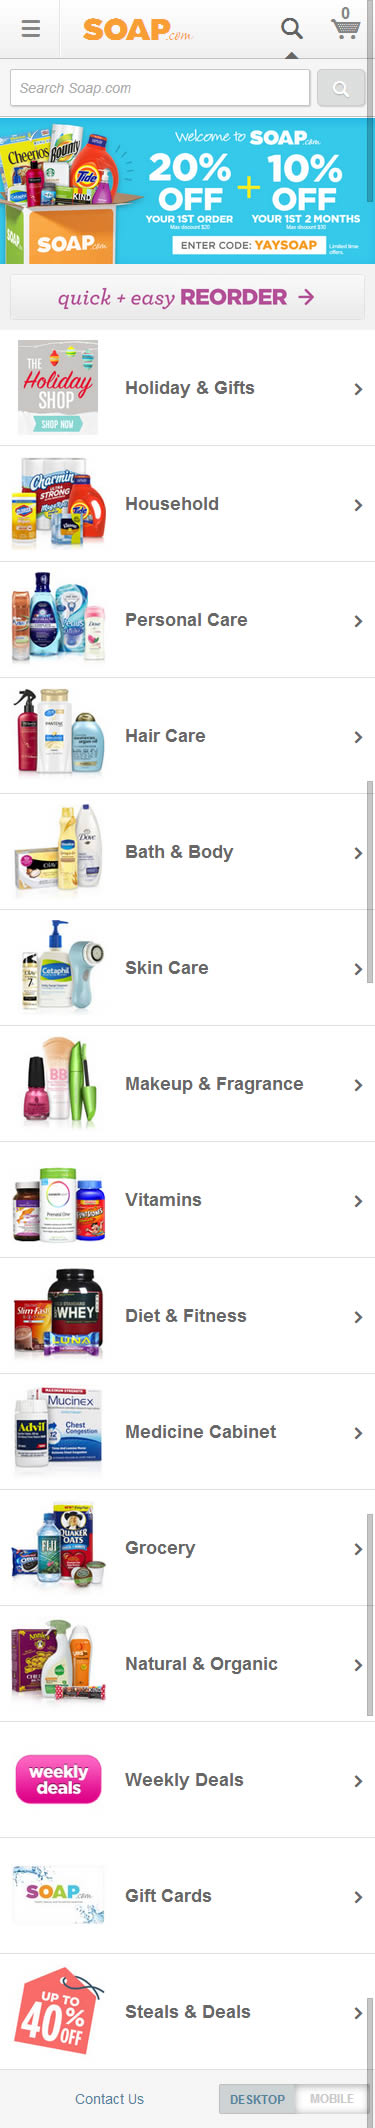 Soap.com ecommerce mobile home page design example